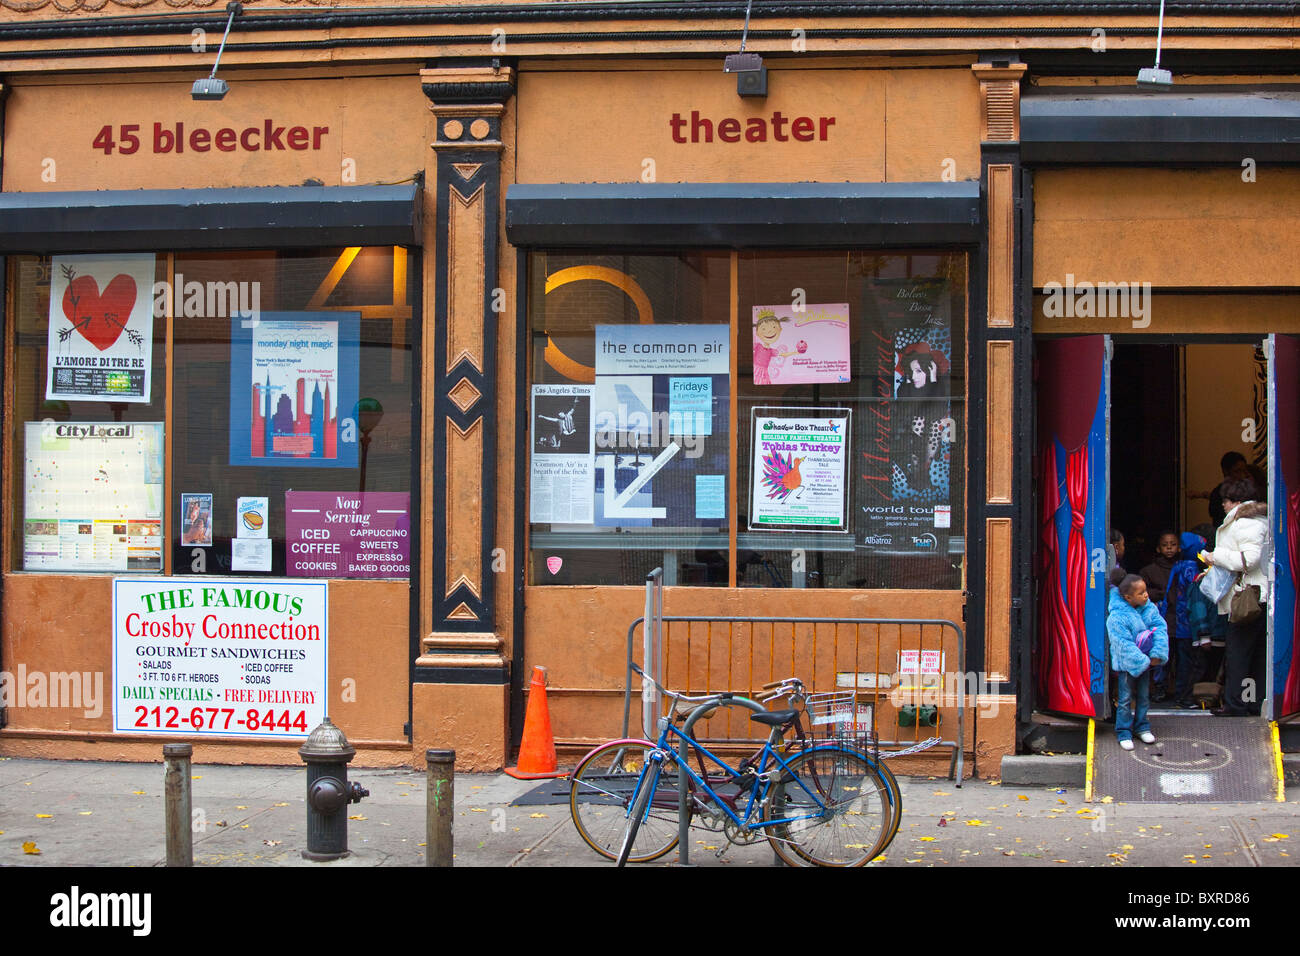 Bleecker Street Theater Company, 45 Bleecker, Manhattan, New York City - Stock Image